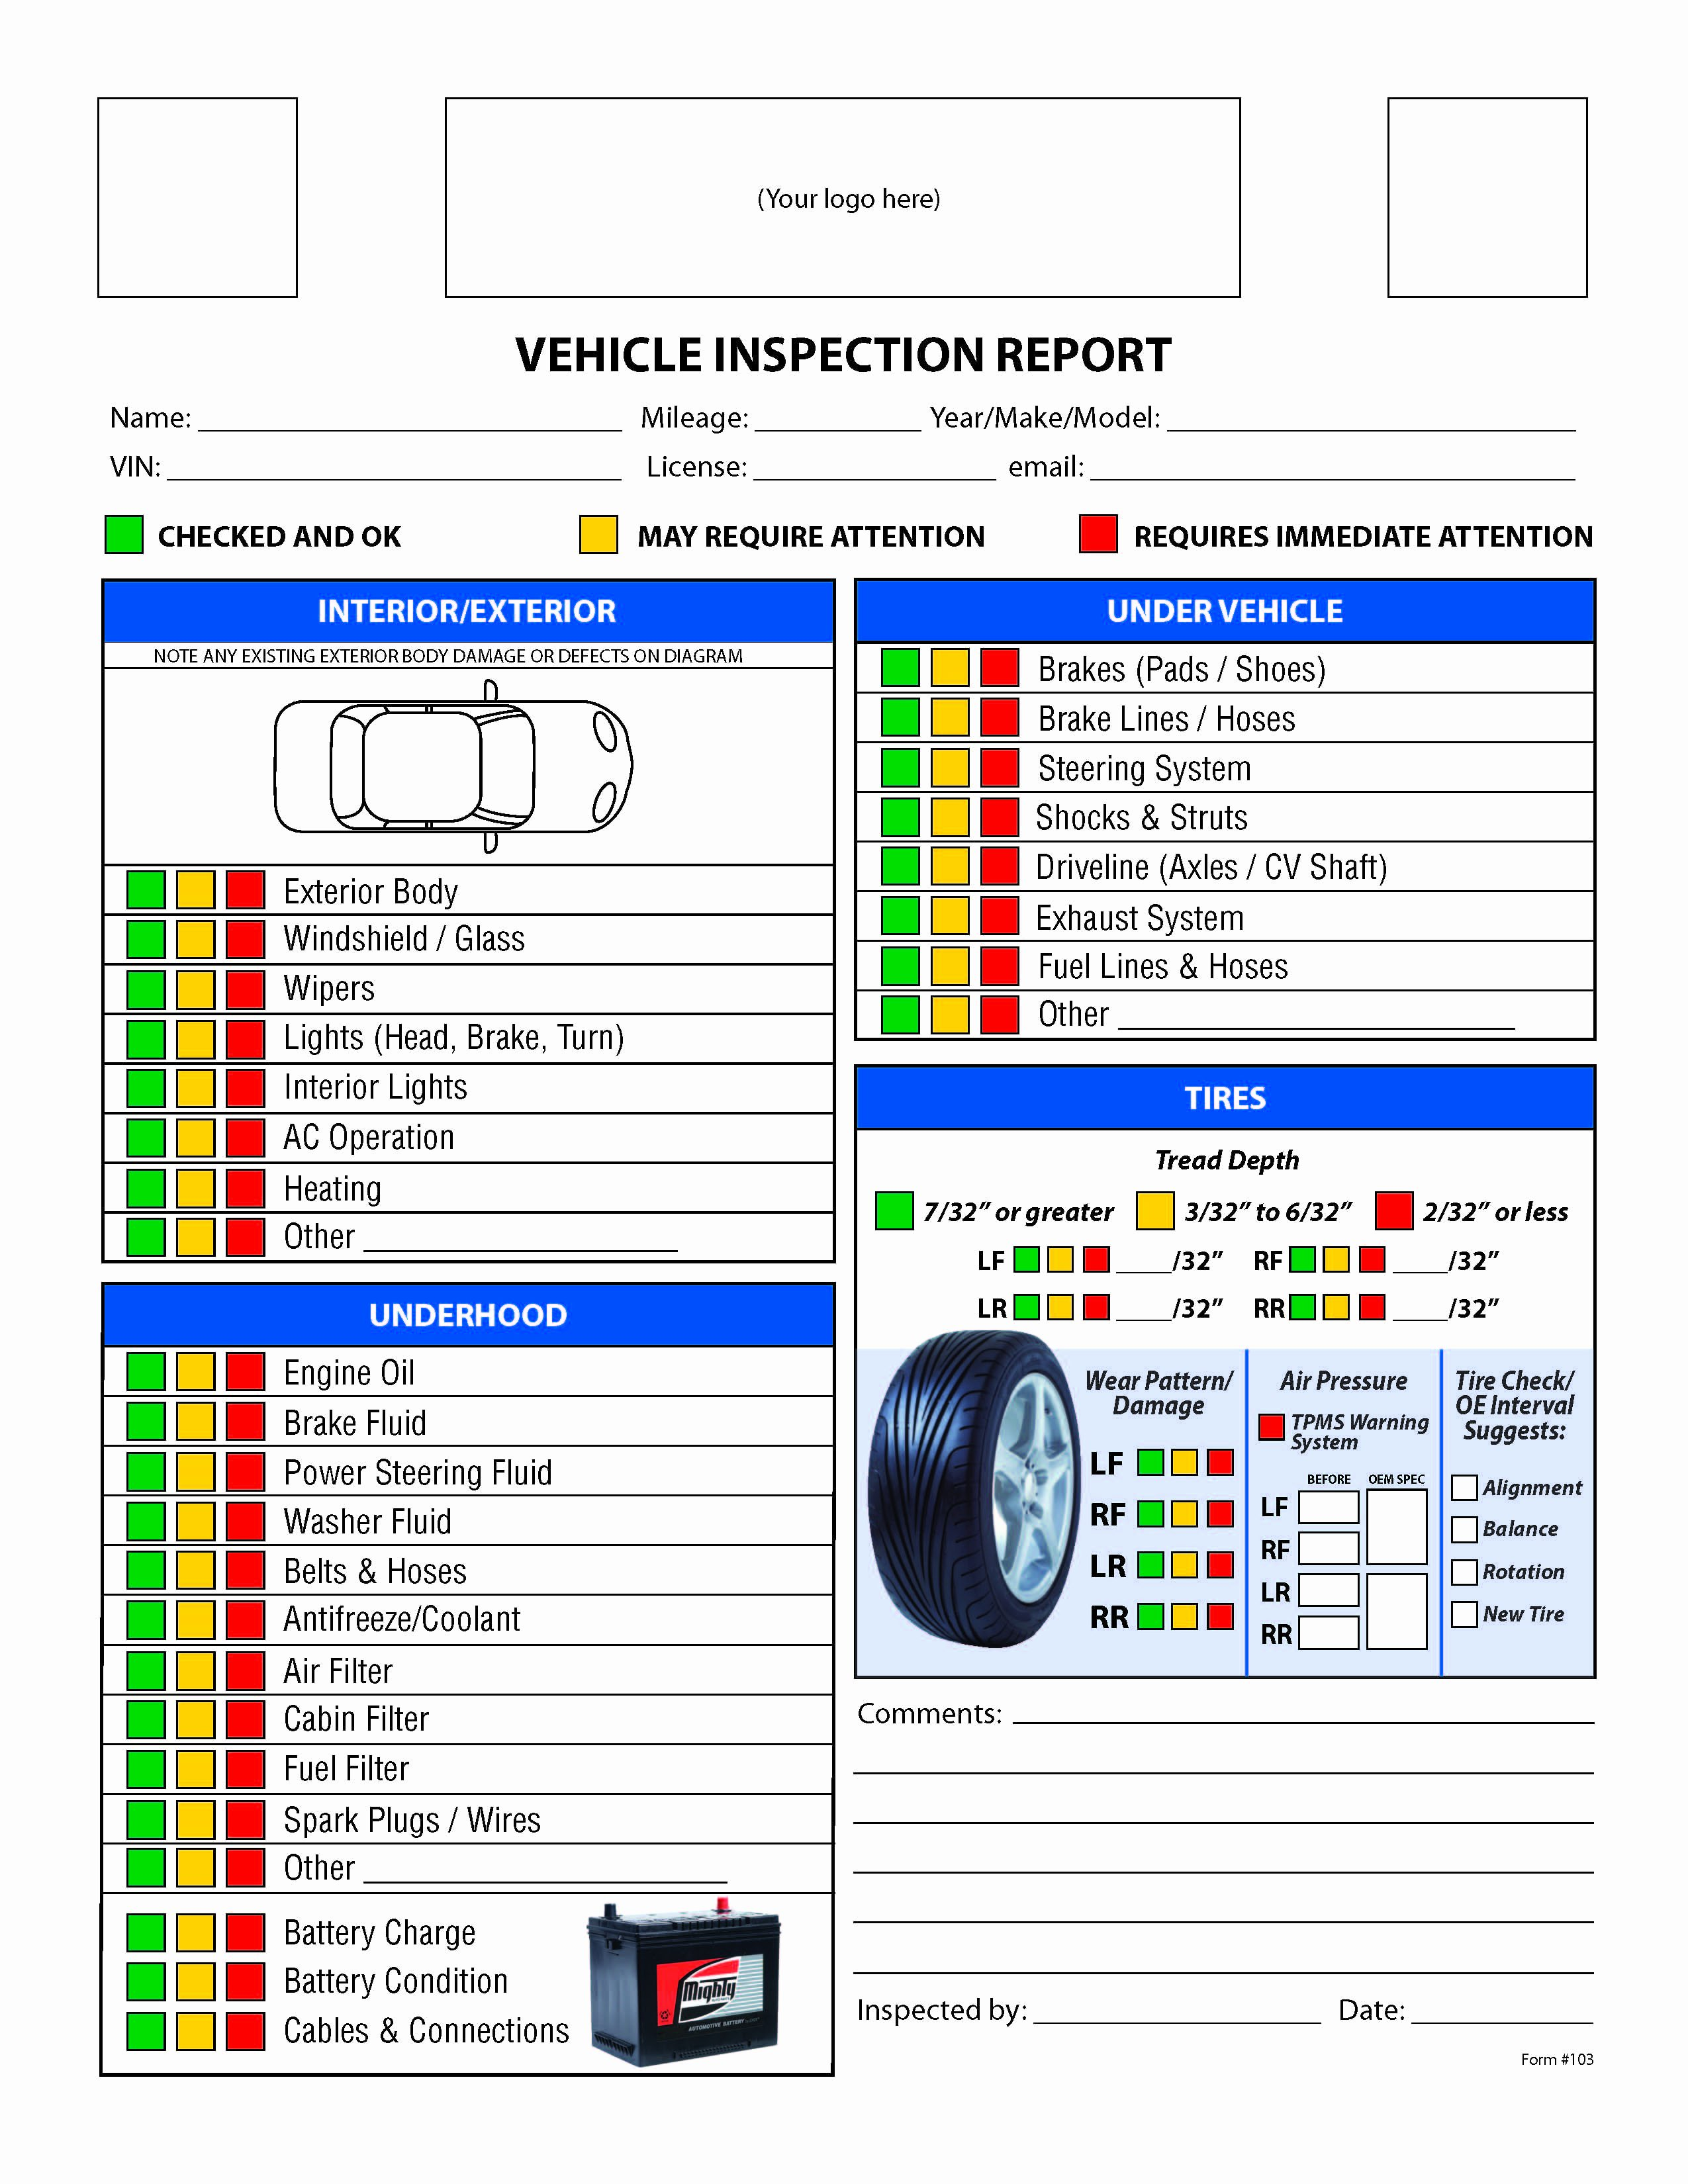 Vehicle Inspection form Template Awesome Free Vehicle Inspection Checklist form